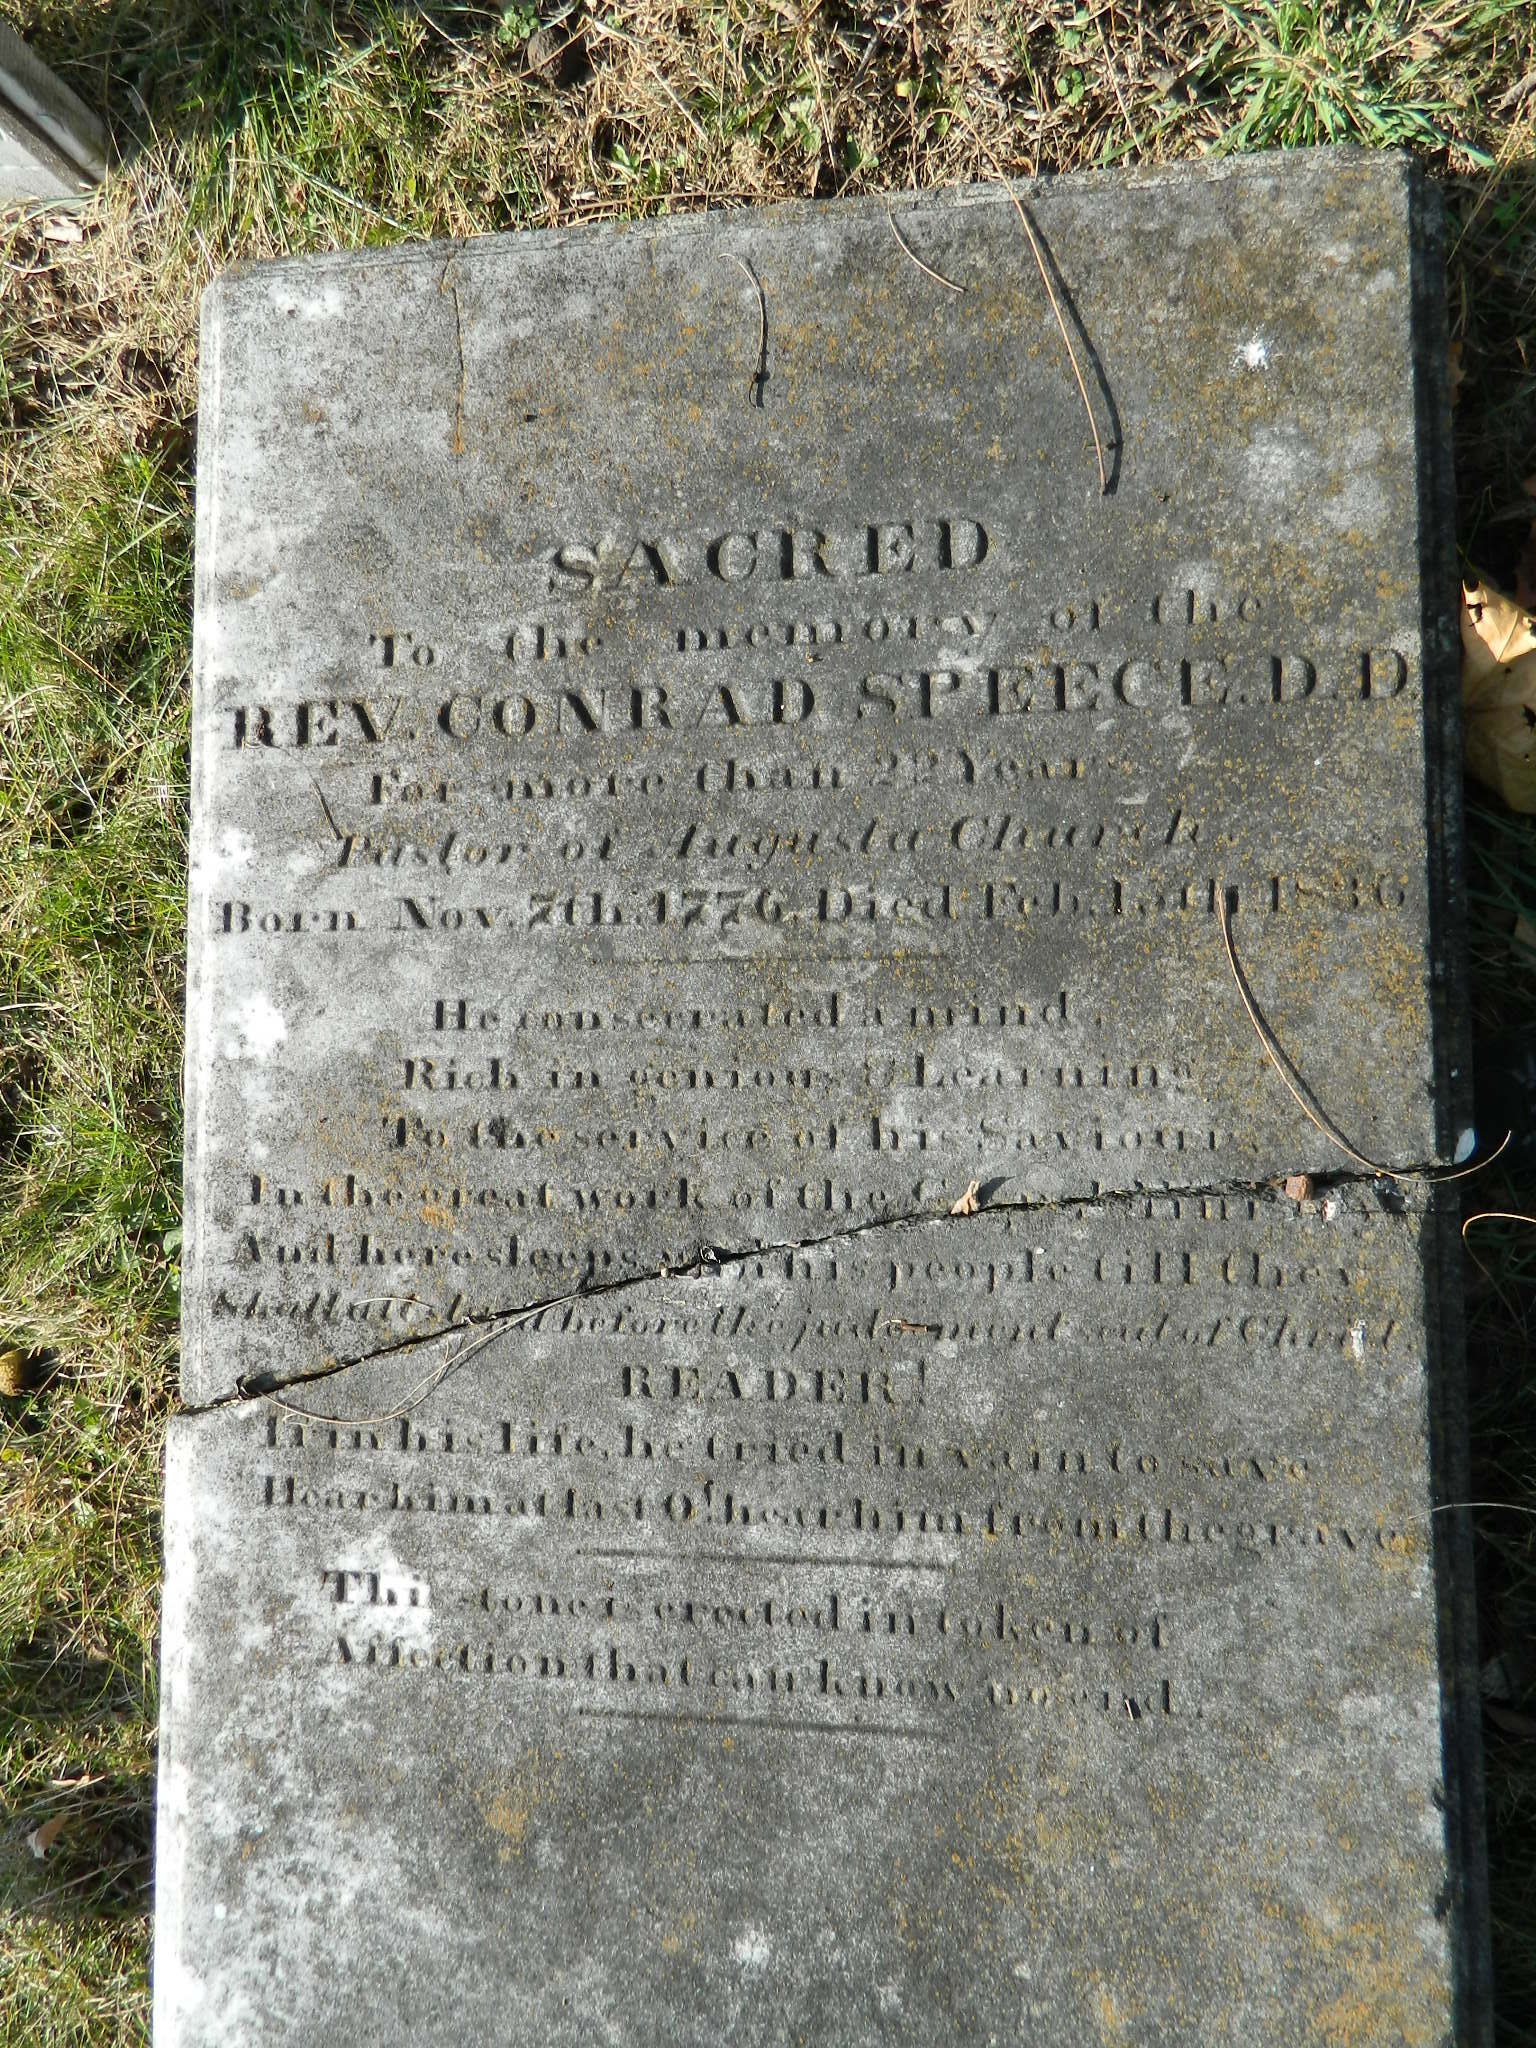 Conrad Speece, who served as the pastor of the Augusta Stone Presbyterian Church for 22 years, is buried at the Augusta Stone Presbyterian Church Cemetery, Fort Defiance, Virginia.